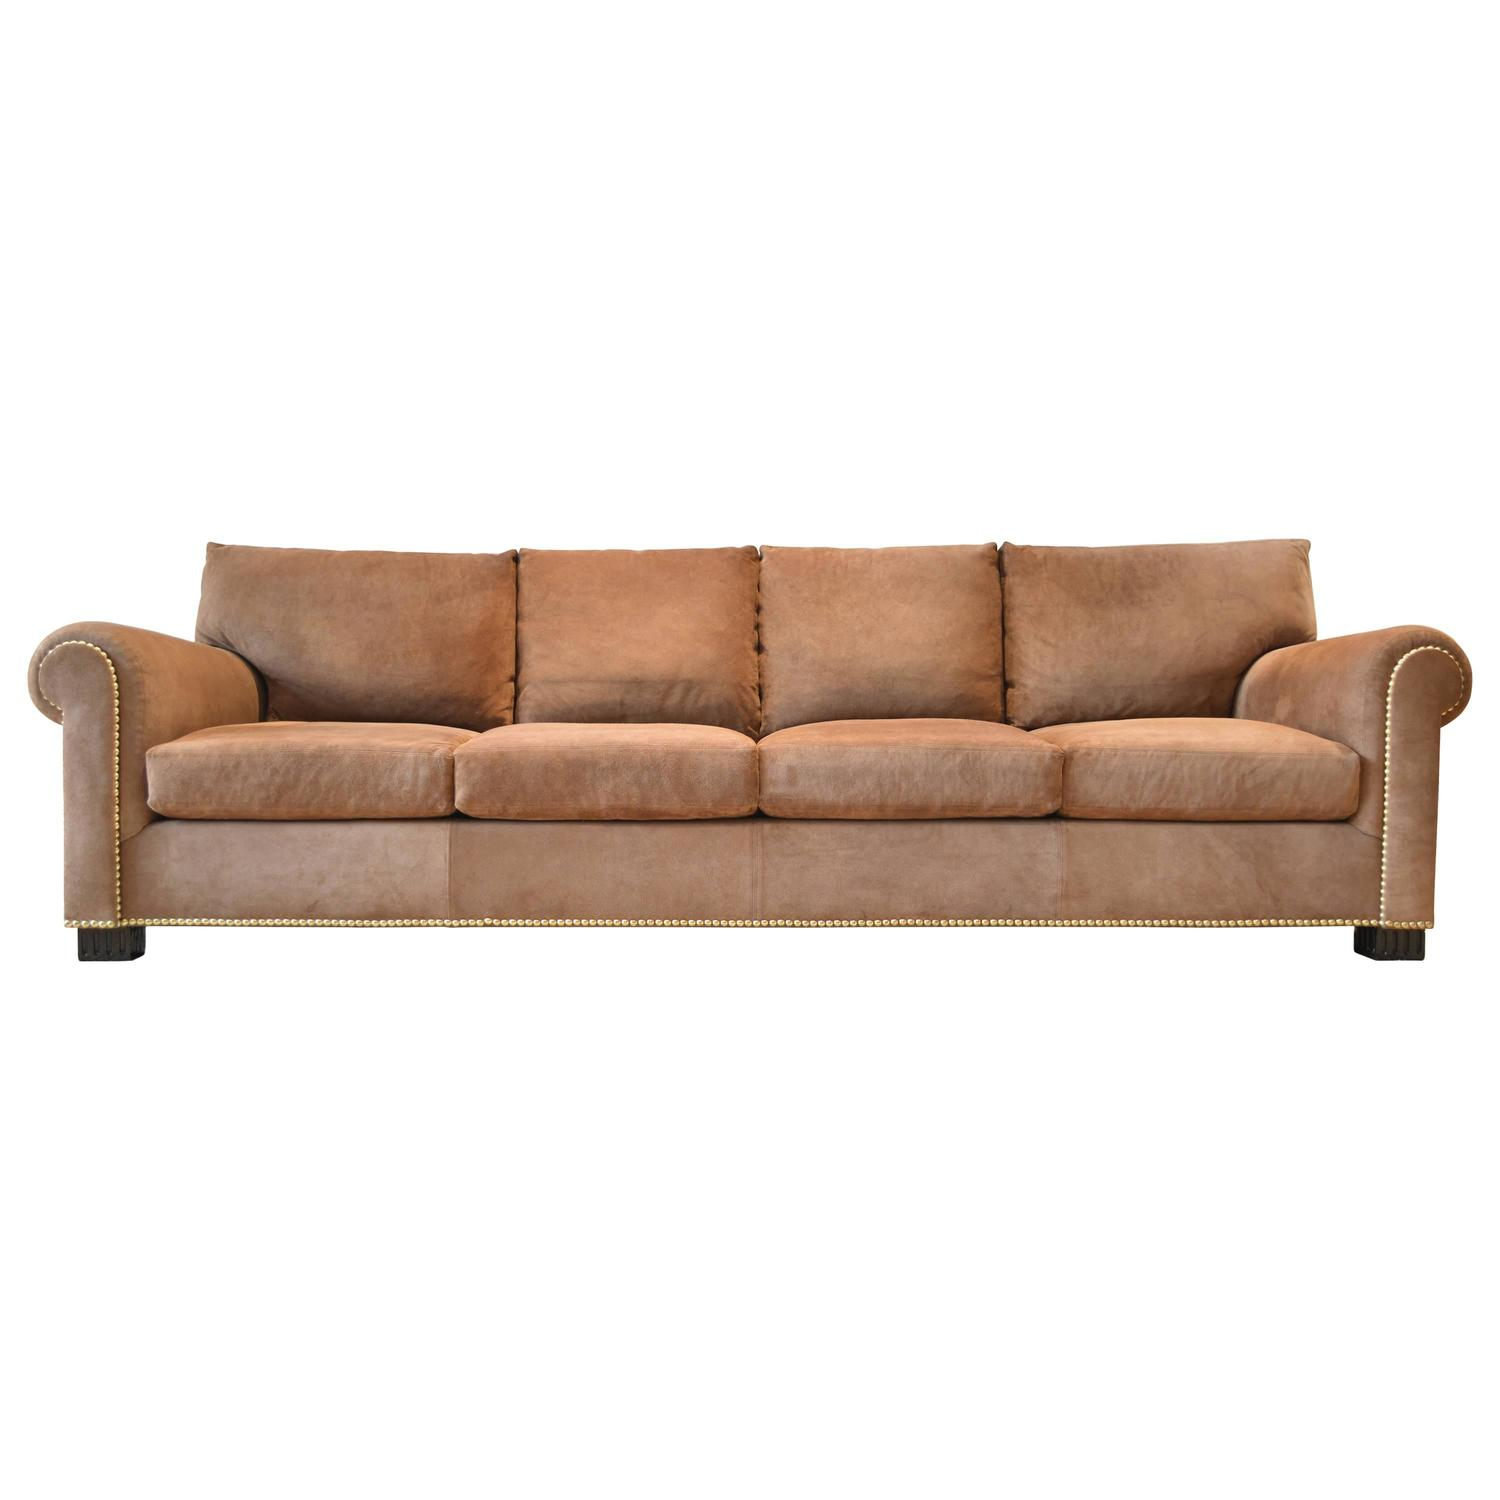 Ralph Lauren Furniture Sale: Suede Rolled Arm Sofa By Ralph Lauren For Sale At 1stdibs